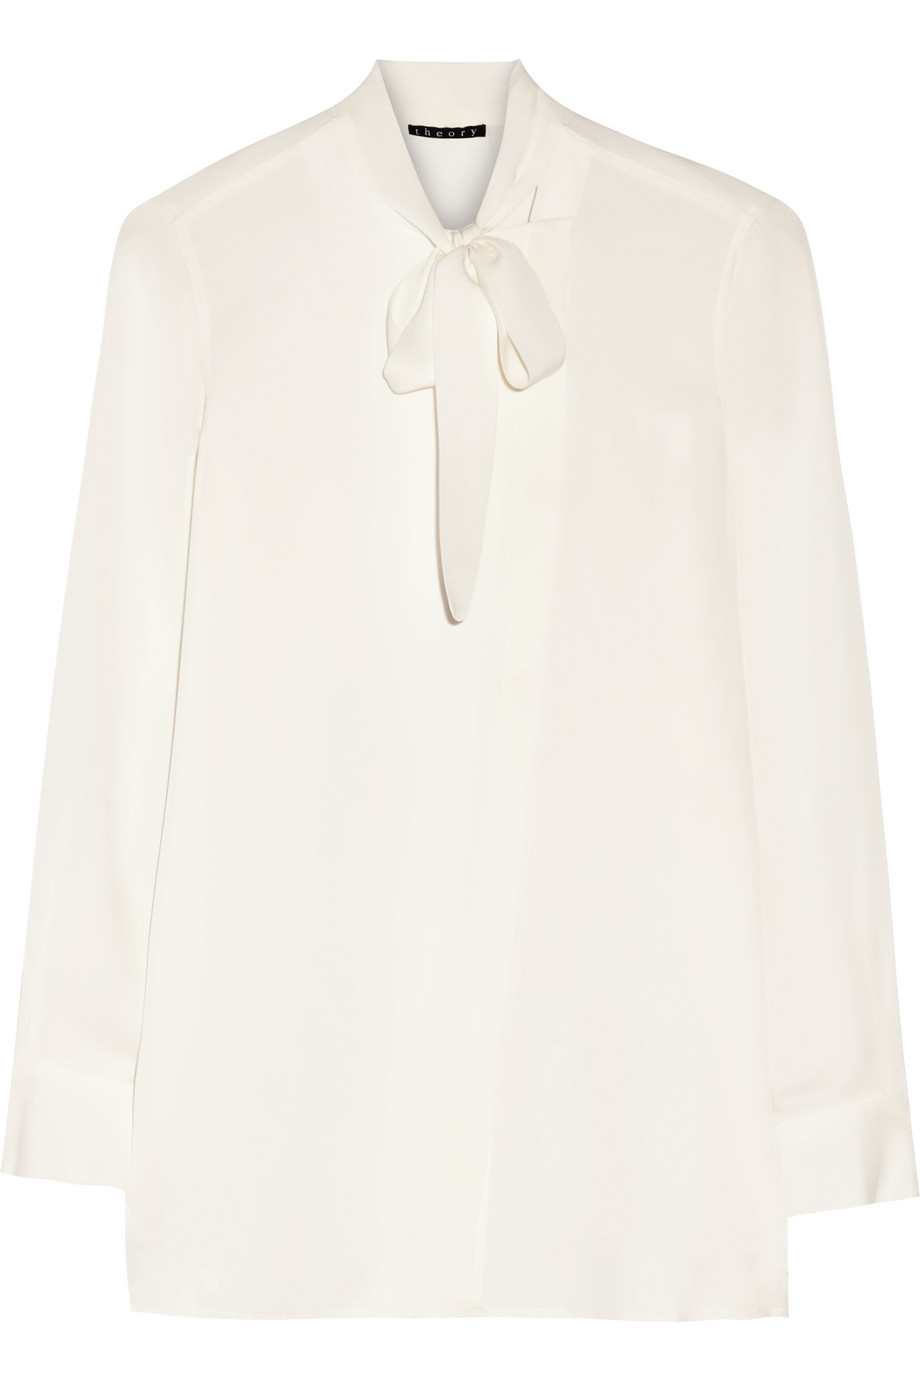 Theory Yumcha Pussy-Bow Silk Crepe De Chine Blouse, Size: XL